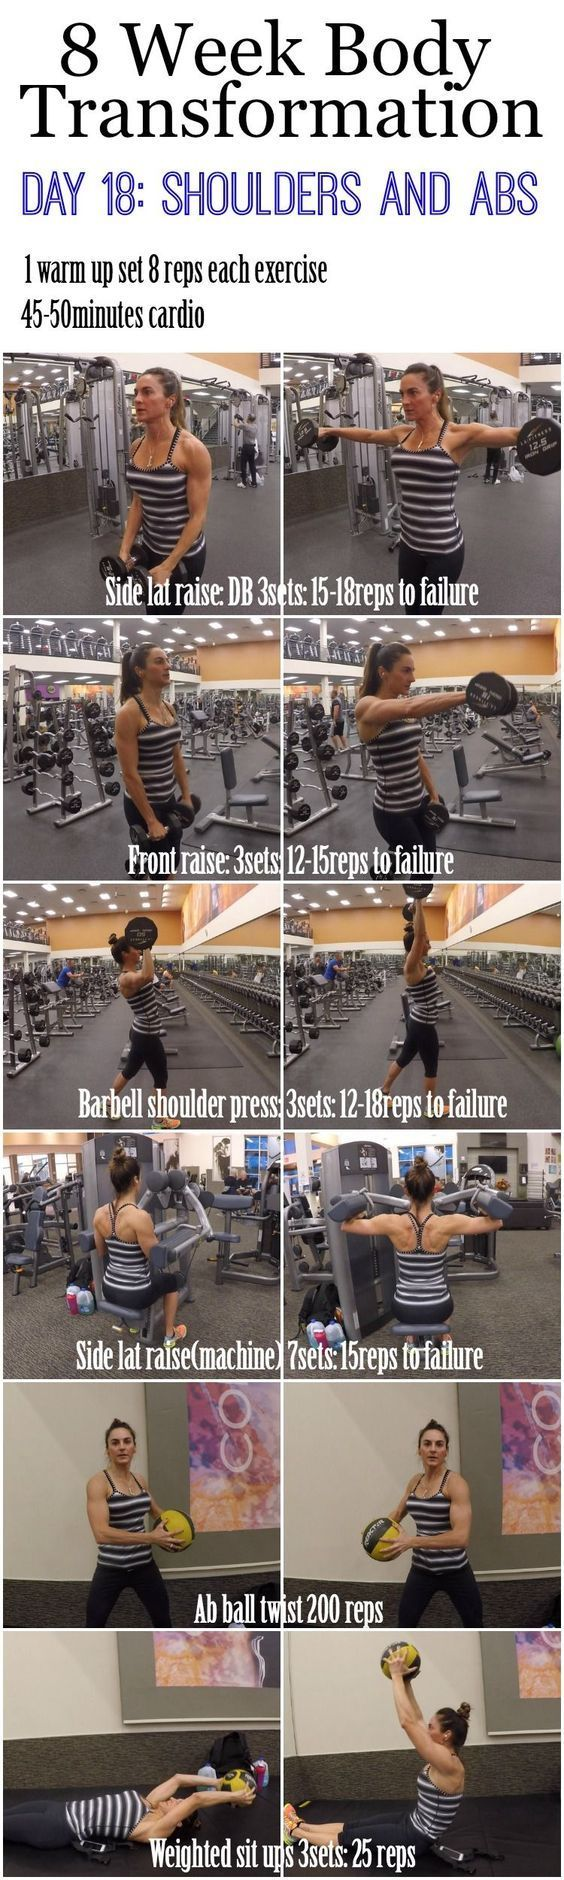 Welcome back from a day of active rest I hope you &; Welcome back from a day of active rest I hope you &; Maria Martinez rlbluebubbles77 Shouldersssss Welcome back from a[…]  #Active #Day #fitness transformation 8 weeks #hope #rest